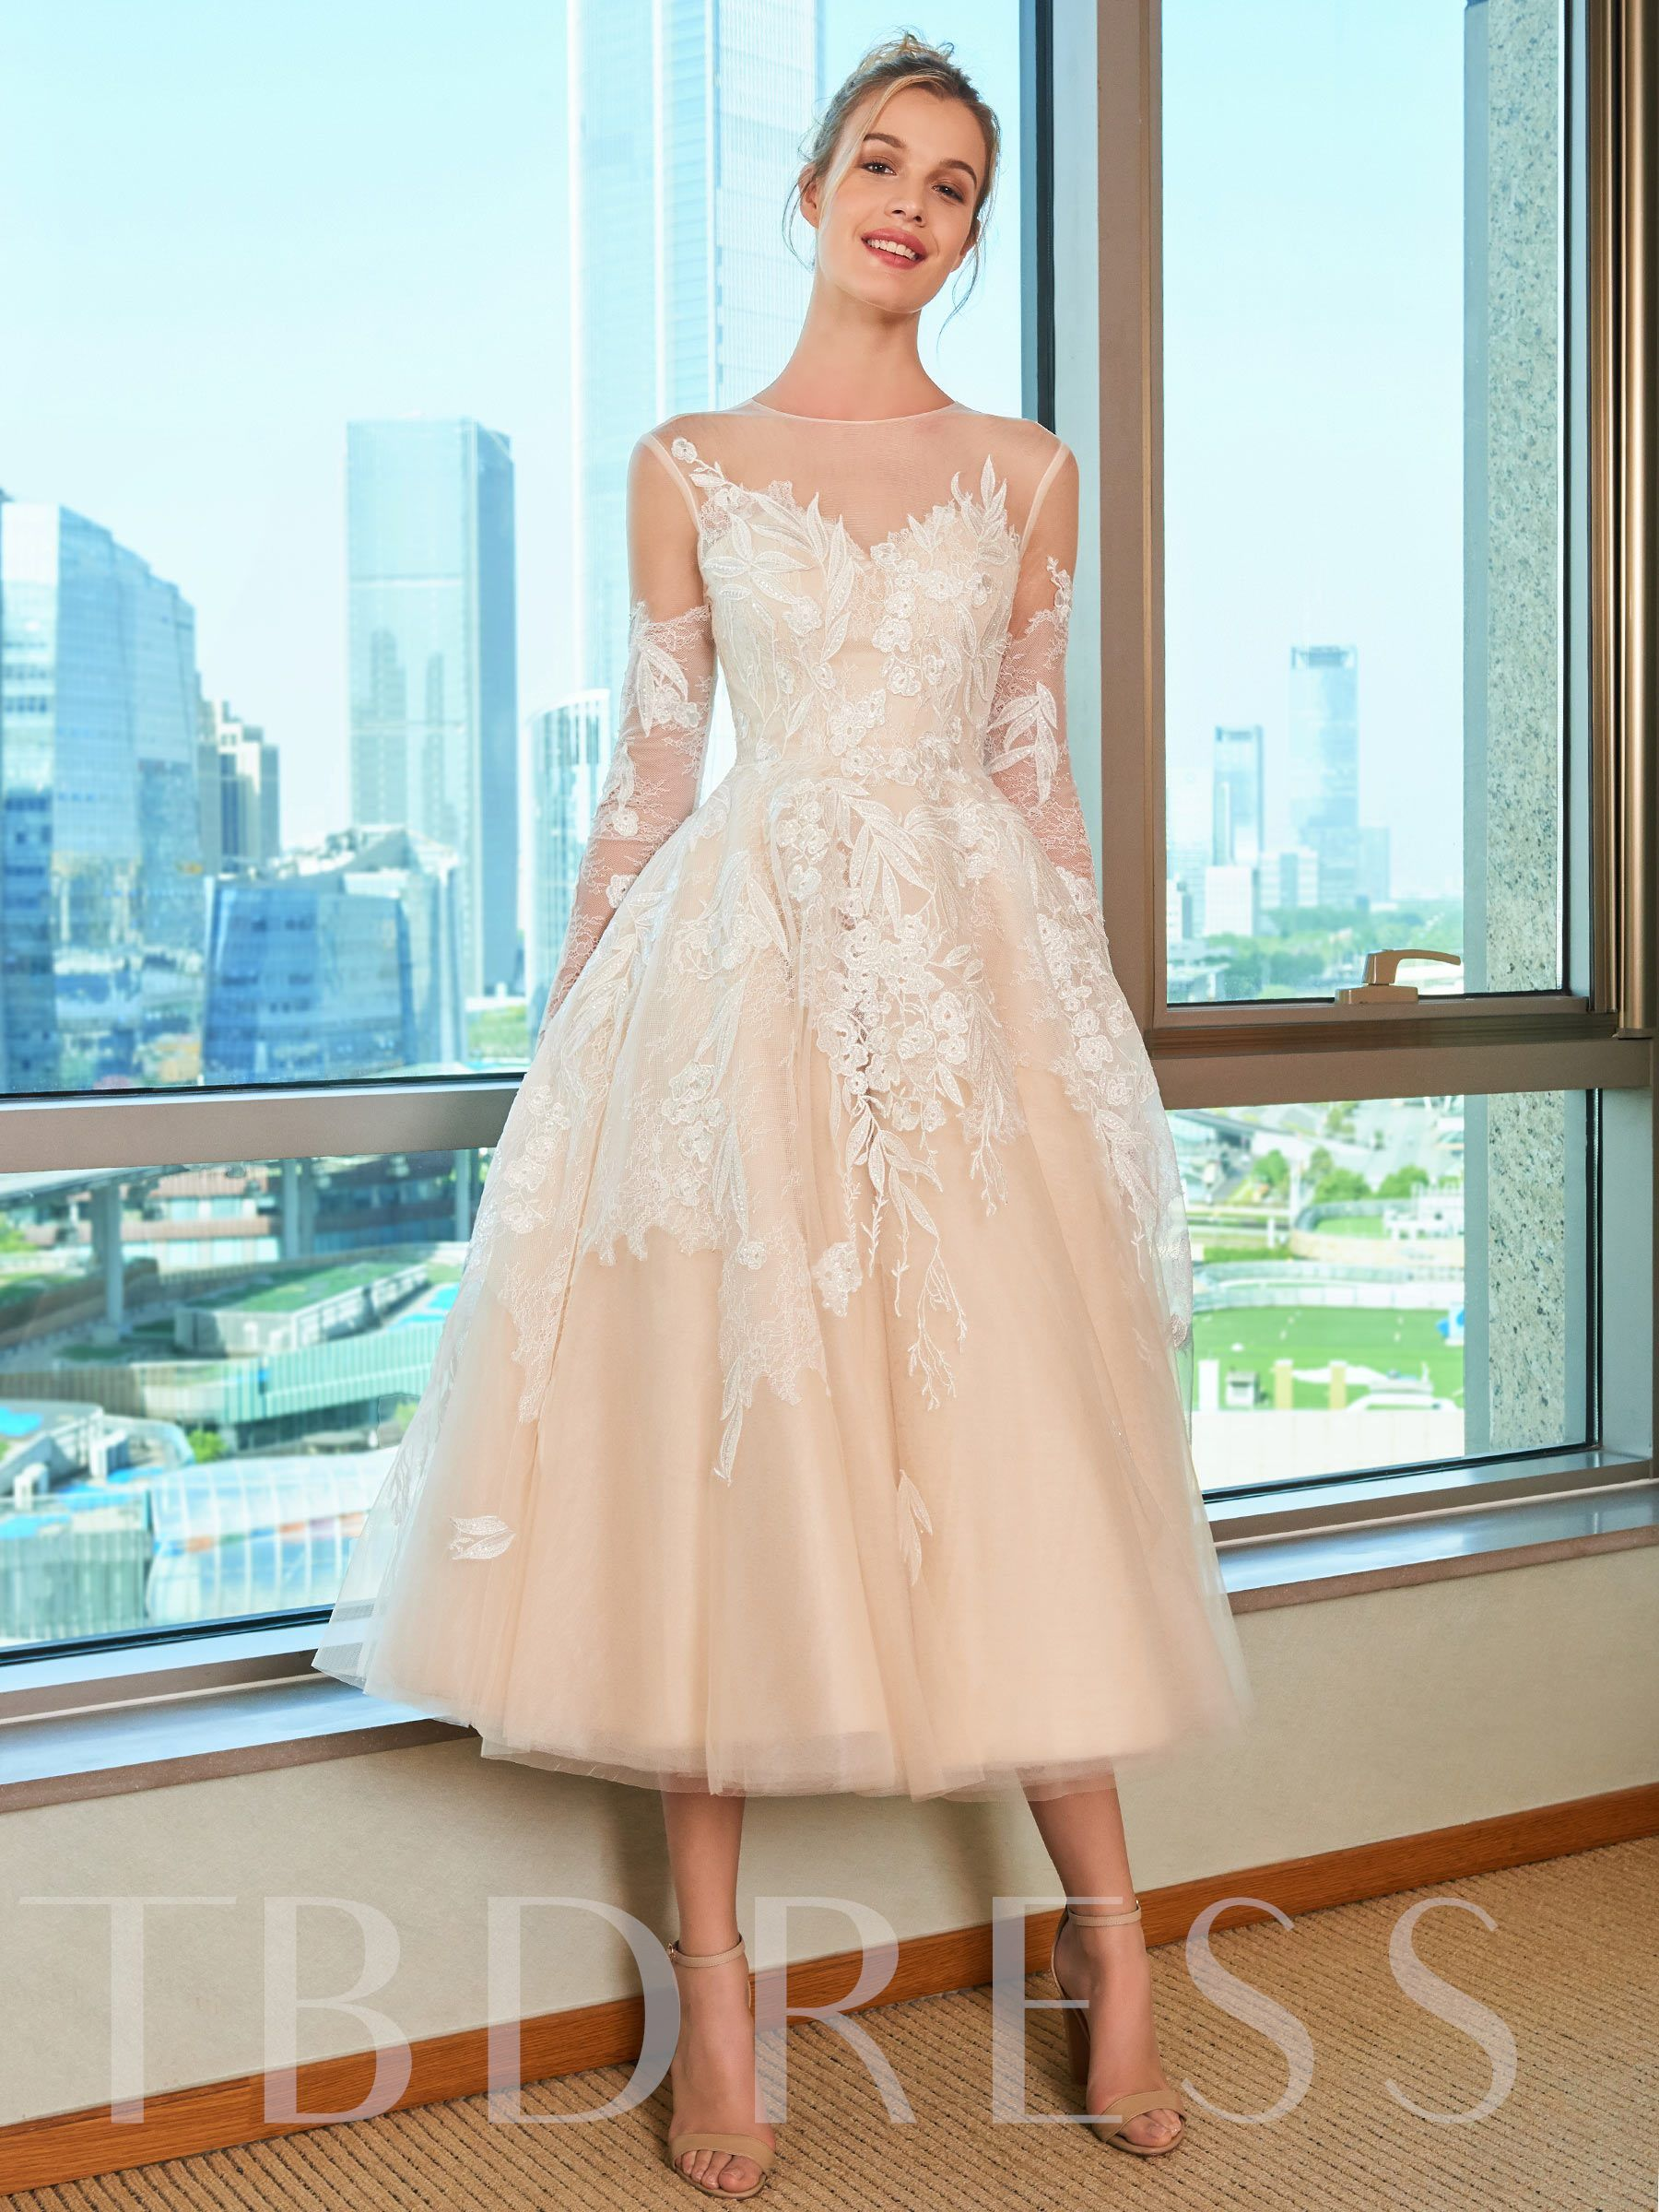 Lace TeaLength Beach Wedding Dress with Long Sleeve (With